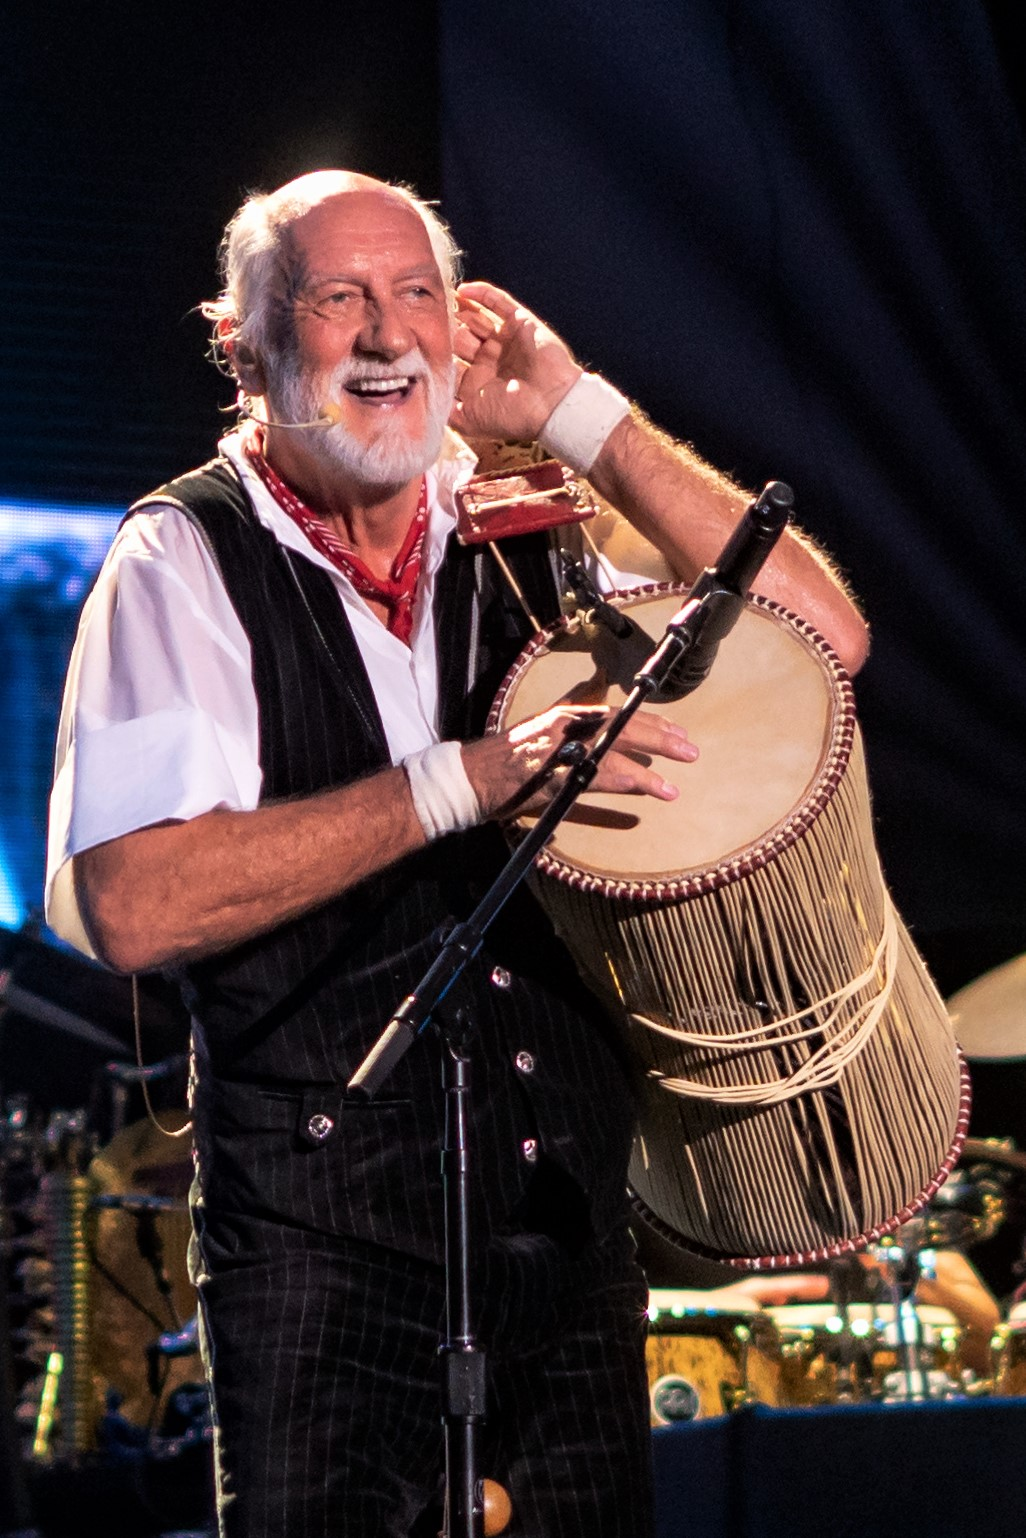 Mick Fleetwood - Wikipedia